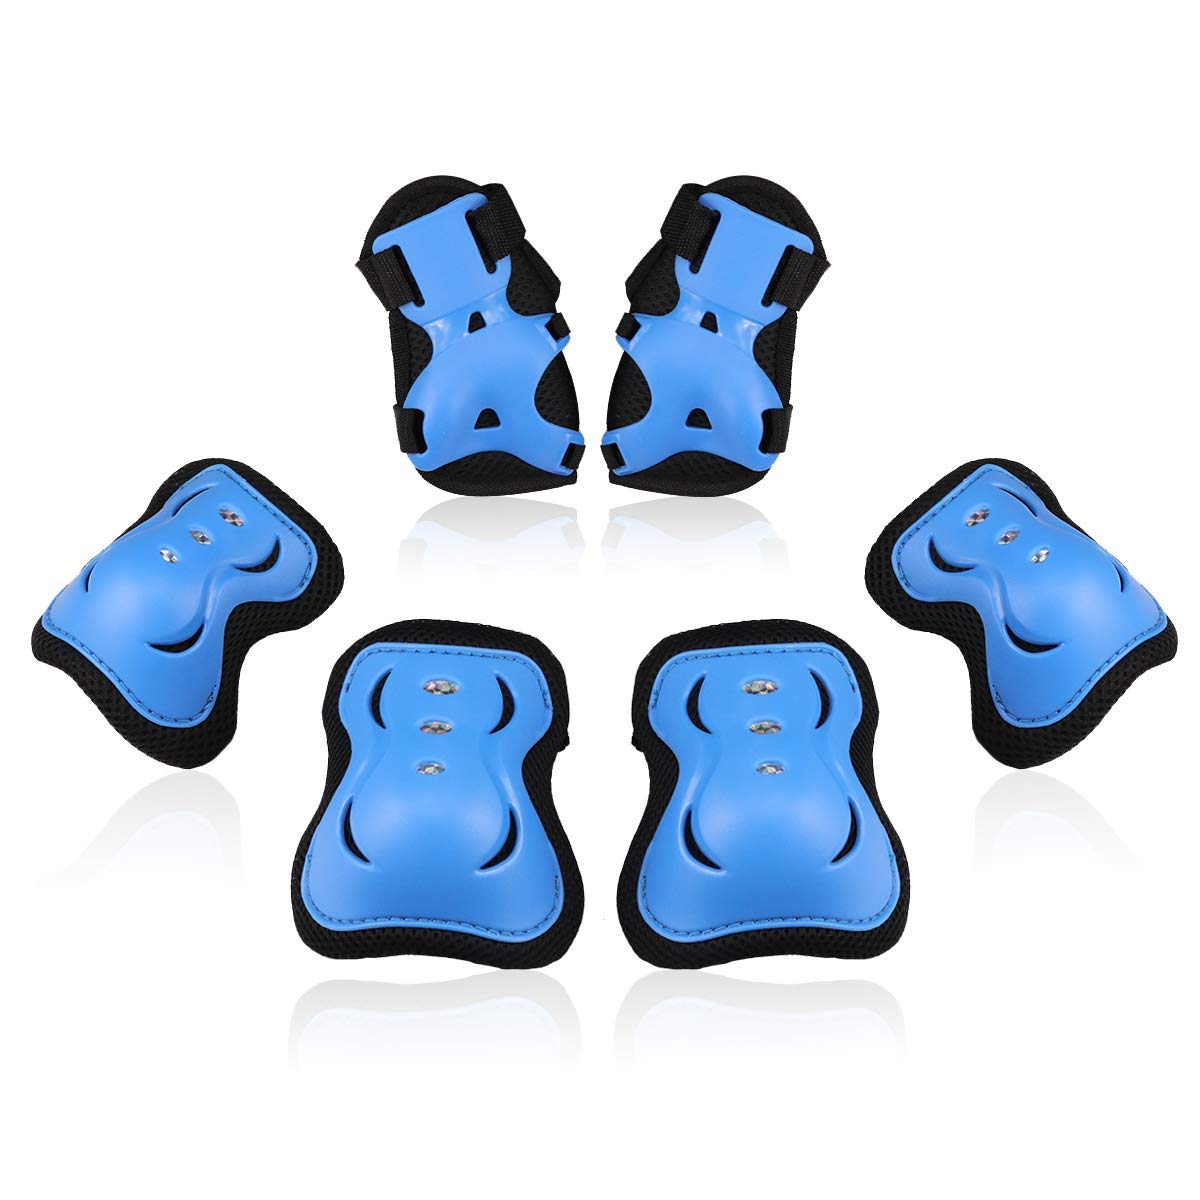 BOSONER Kids/Youth Knee Pad Elbow Pads Guards Protective Gear Set for Rollerblade Roller Skates Cycling BMX Bike Skateboard Inline Skatings Scooter Riding Sports (Black/Blue, Medium(9-15 Years)) by BOSONER